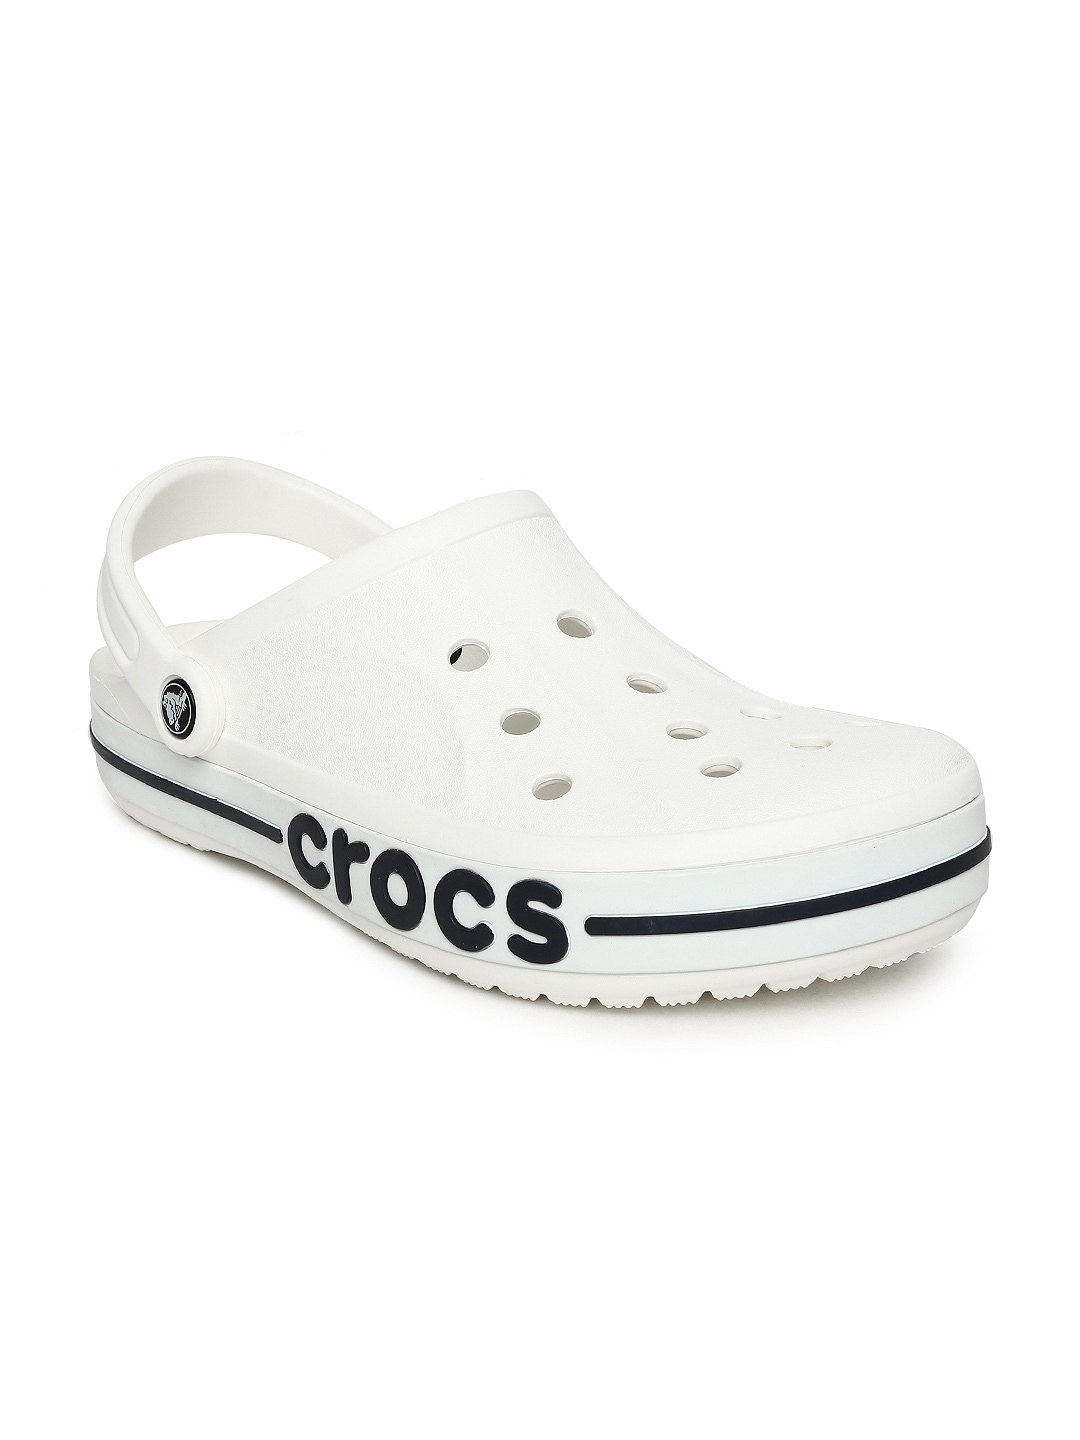 37f39659d White Crocs - Buy White Crocs online in India